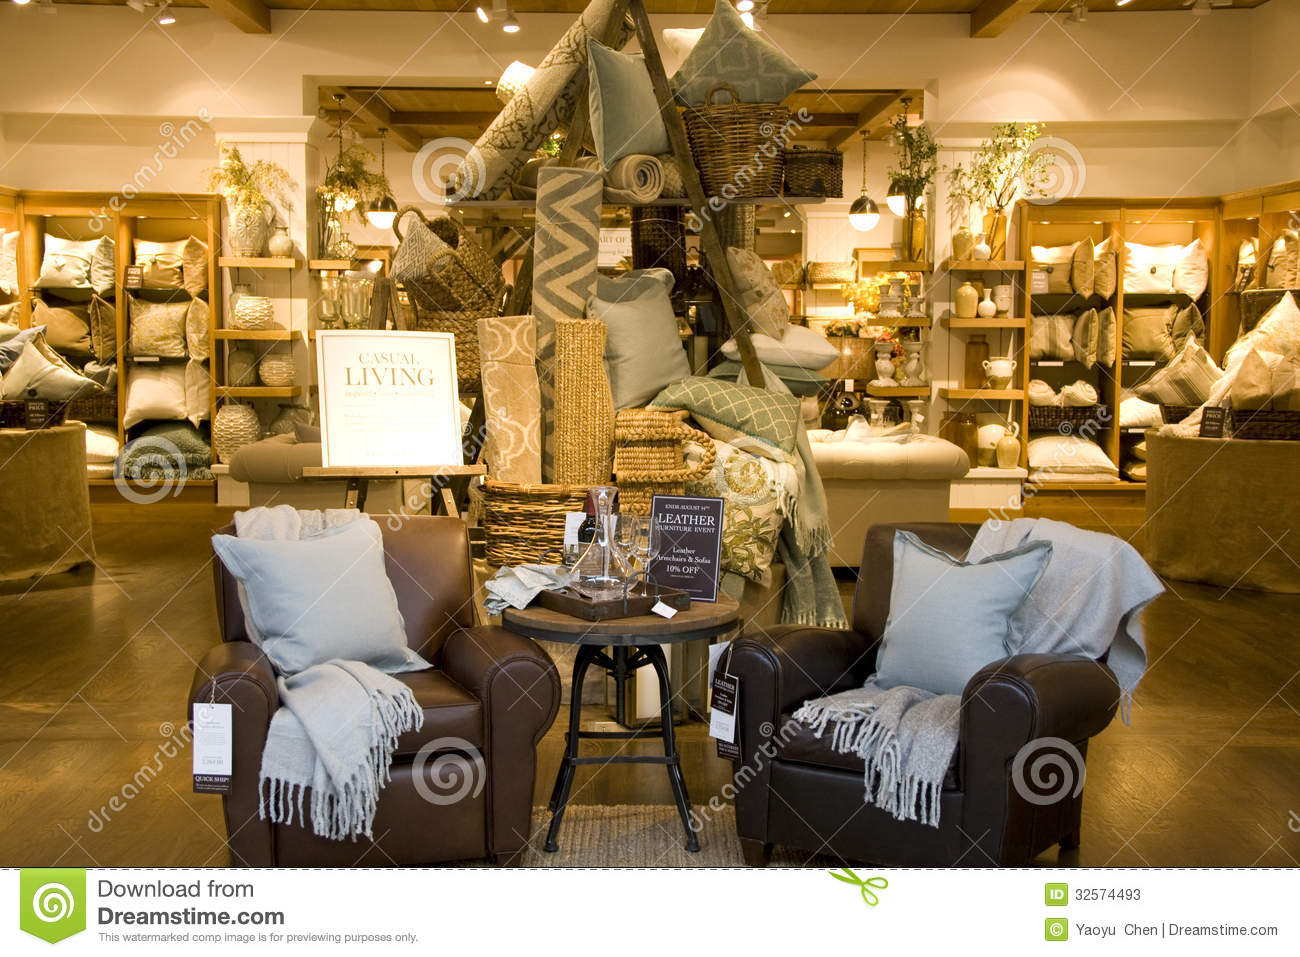 Home Decor Stores Home Decor Stores Near Me Home Decor Stores